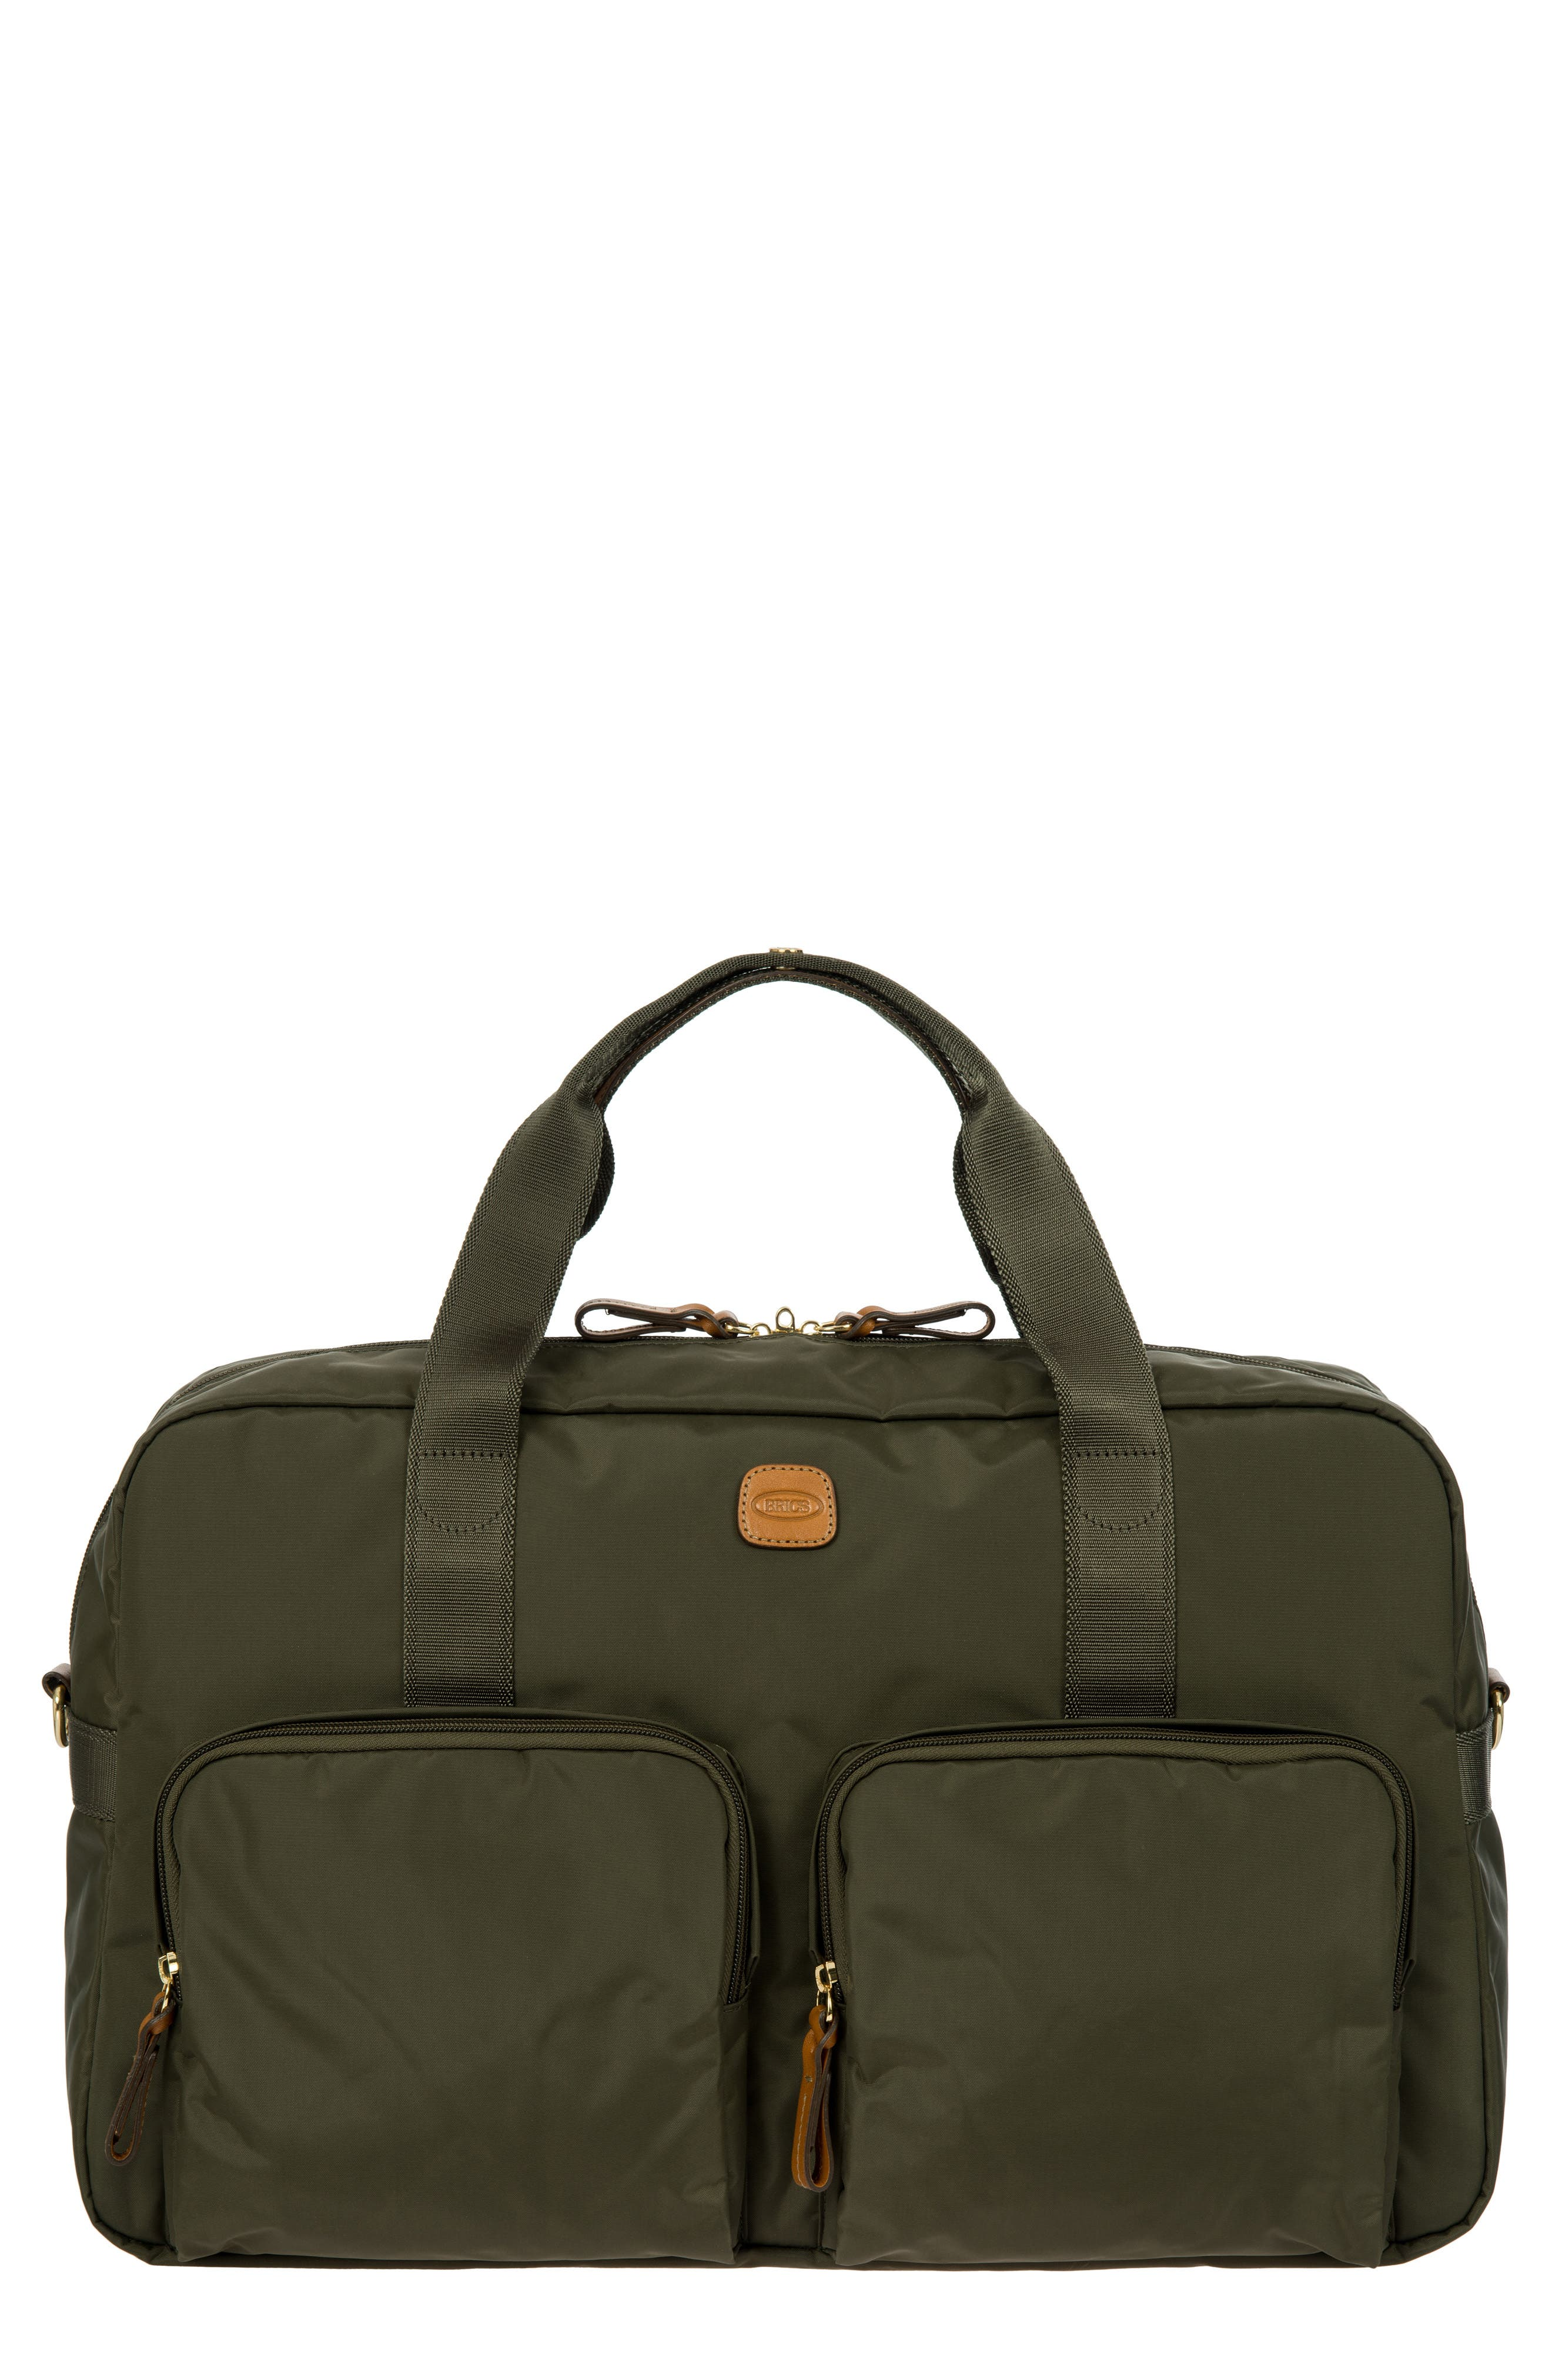 X-Bag Boarding 18-Inch Duffel Bag,                         Main,                         color, OLIVE